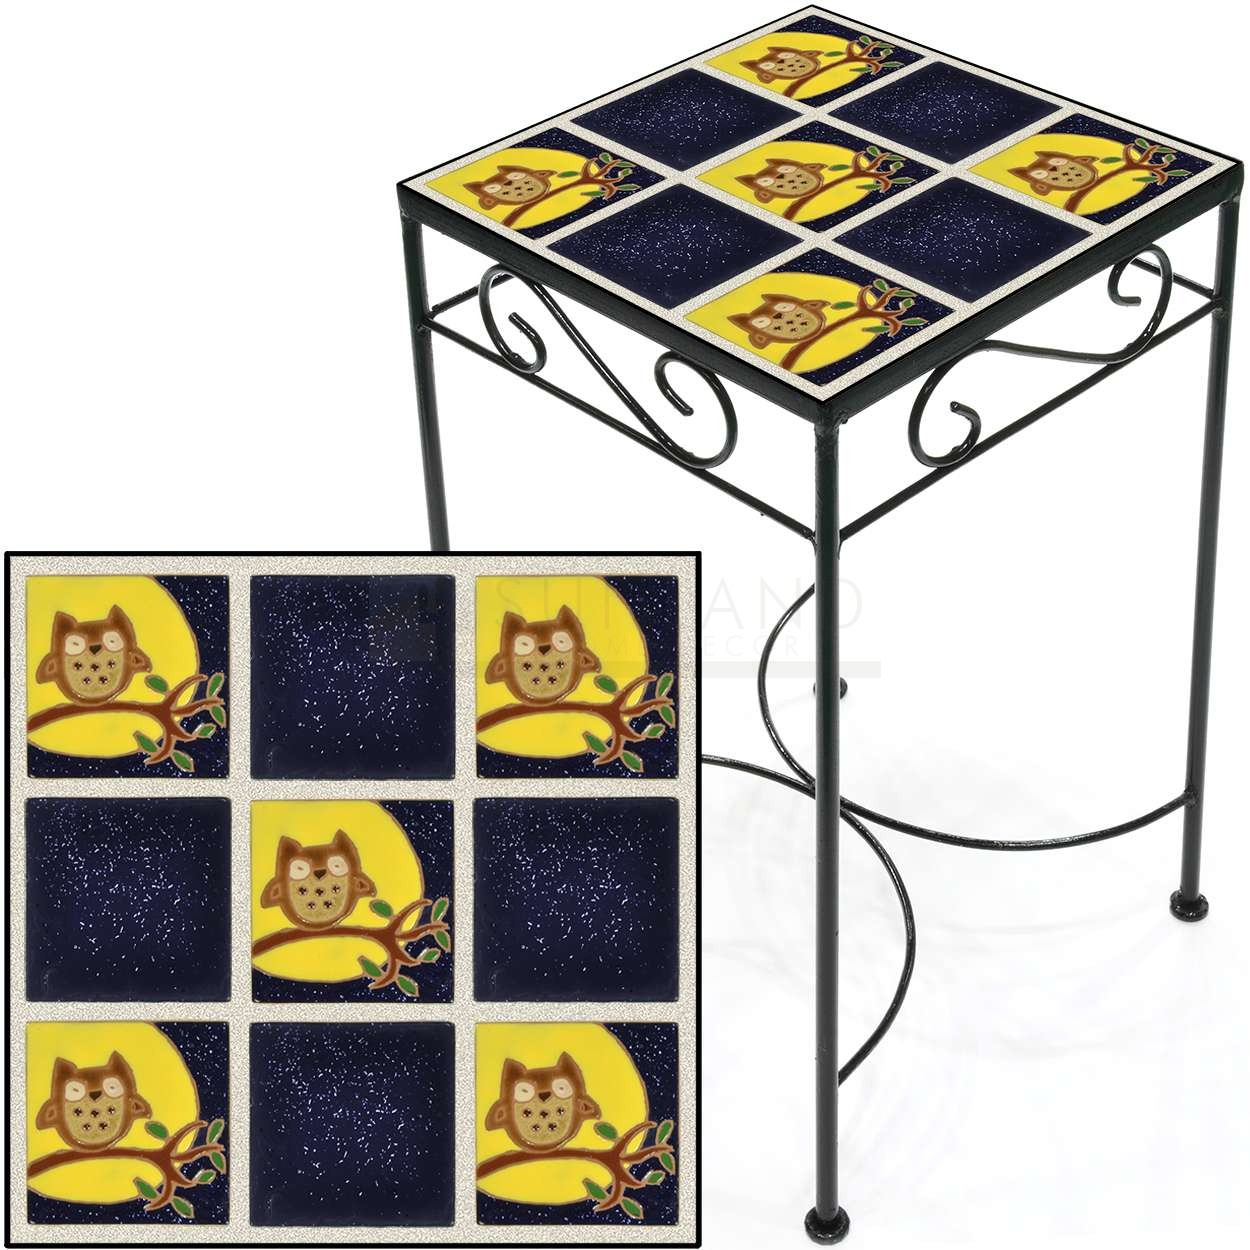 tile accent table owls night tall square save metal and acrylic console ikea gold brass side white carpet door strip furniture anchors small marble dining oak end tables with